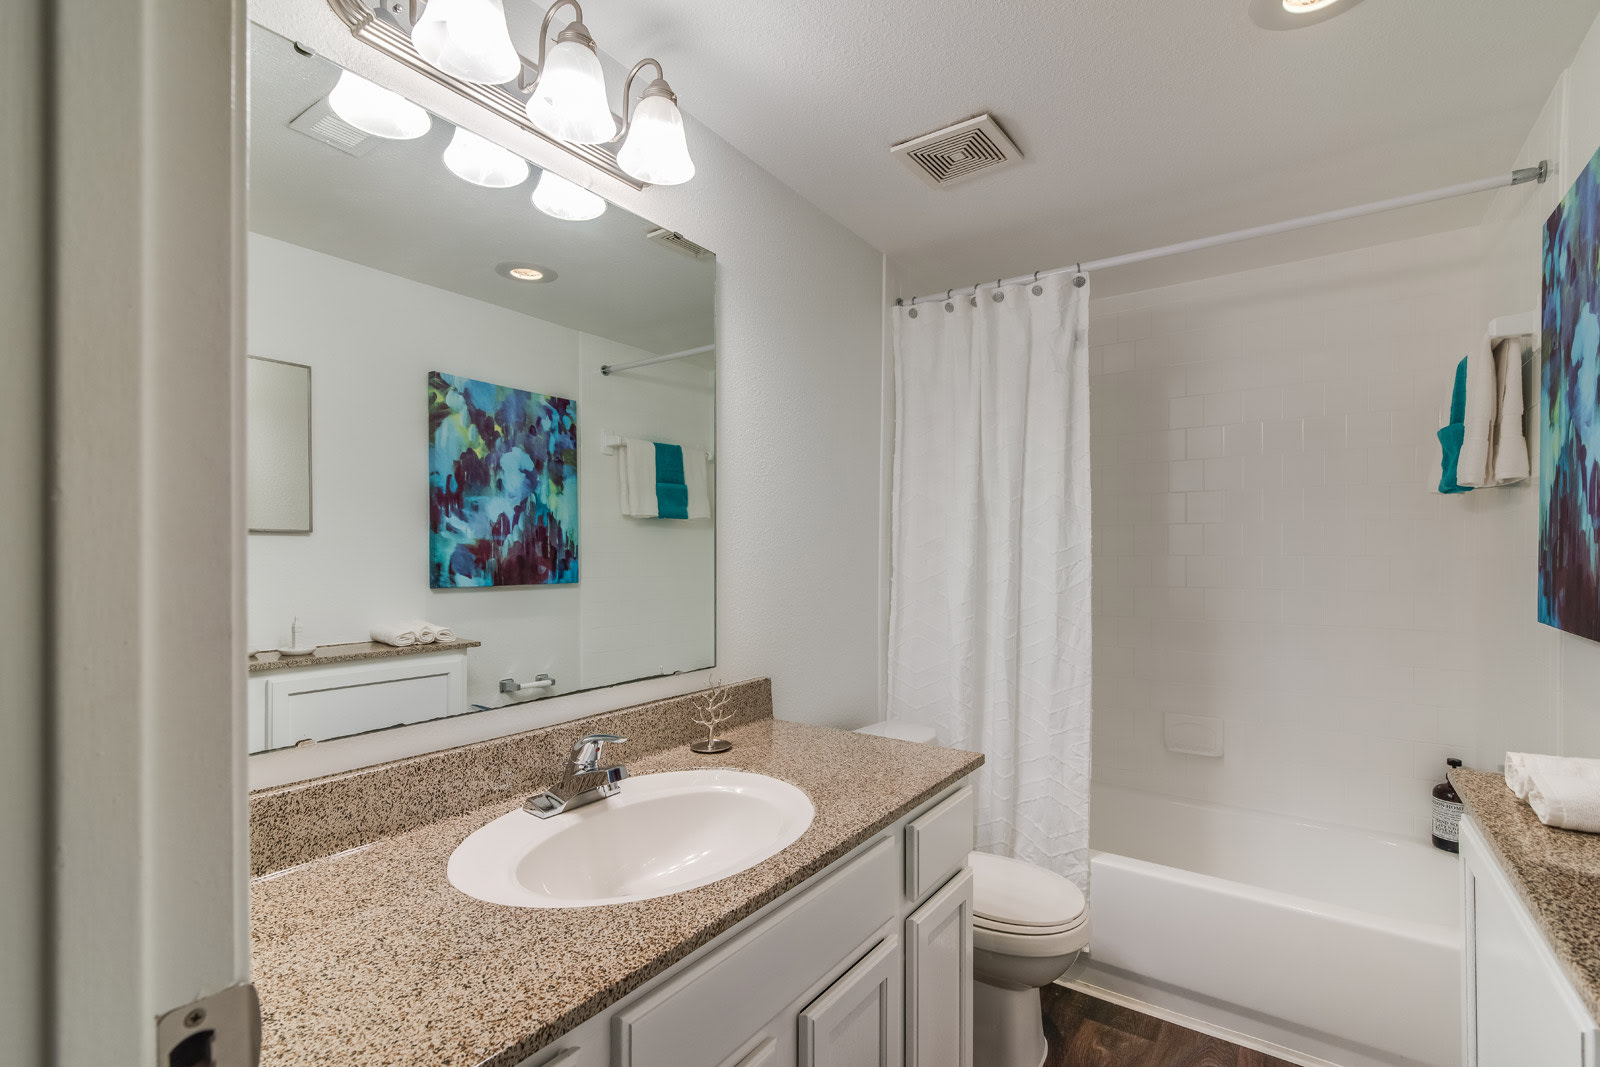 Brushed Nickel Light Fixtures at Allen House Apartments, Houston, Texas